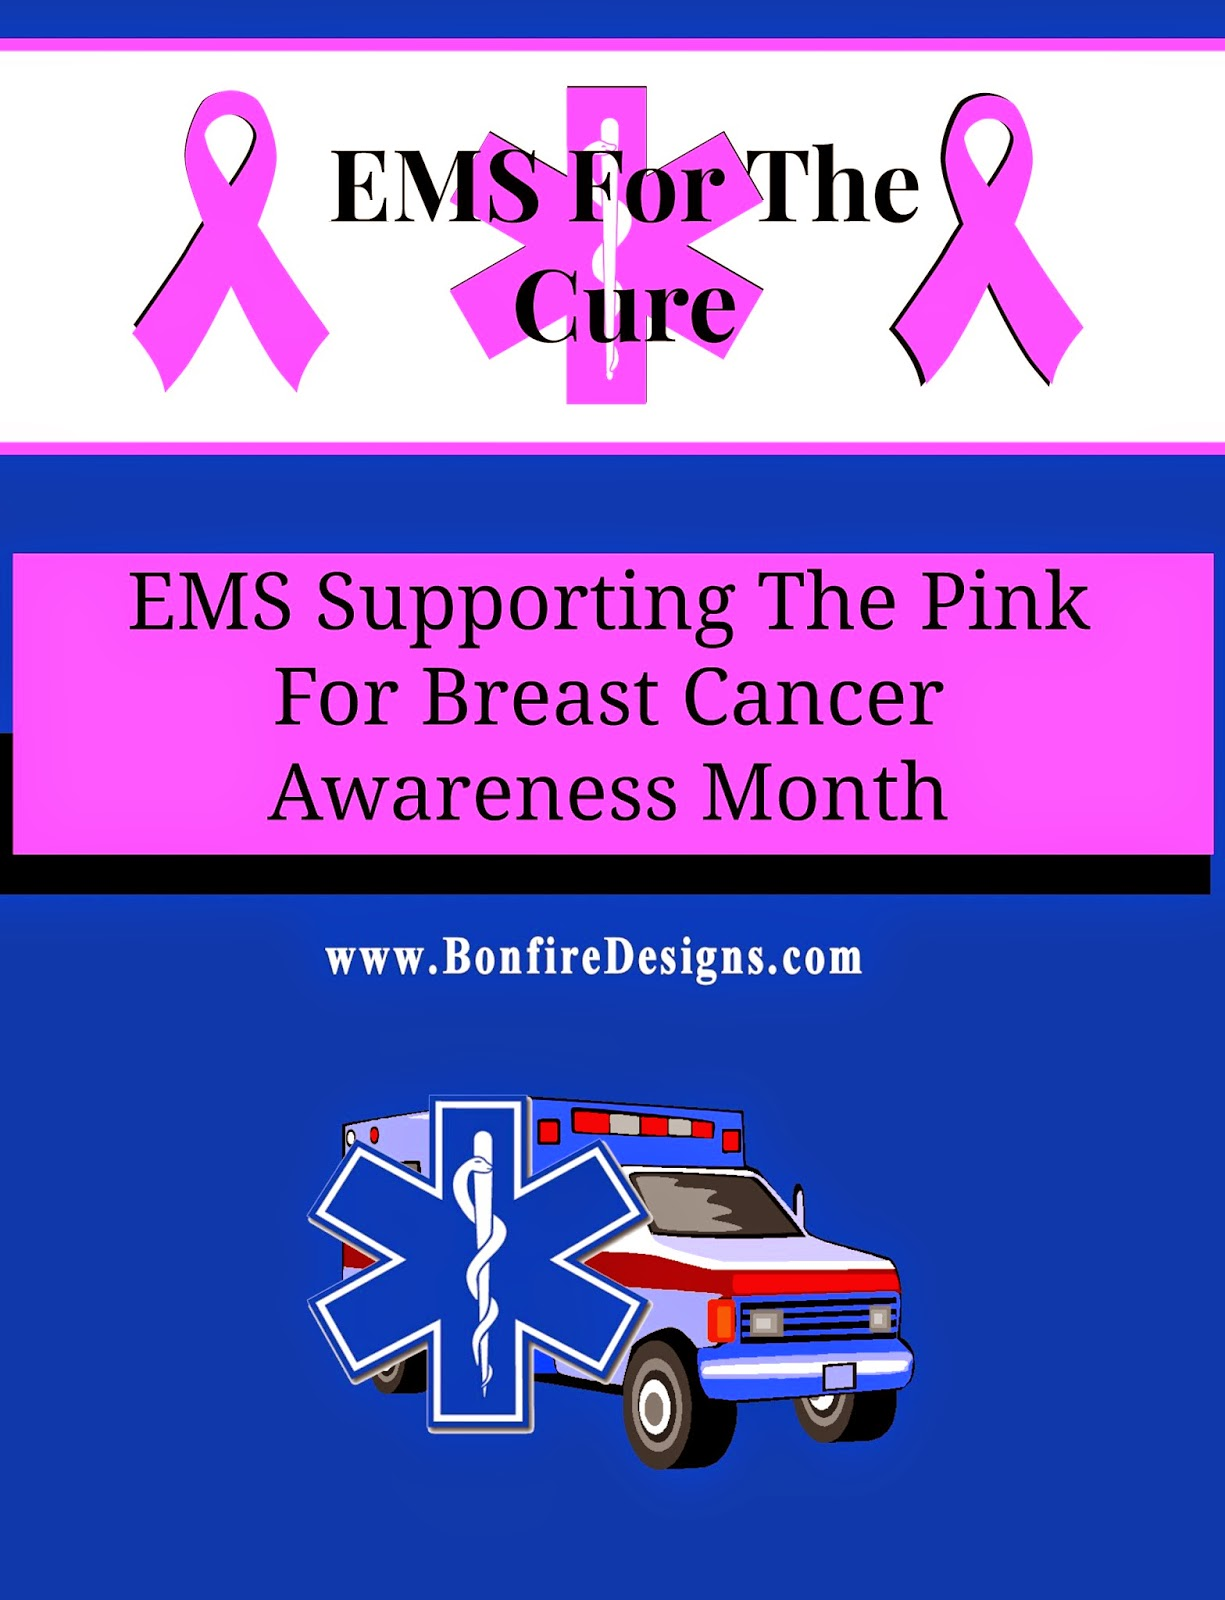 EMS EMT and Paramedics Supporting Breast Cancer Awareness Month